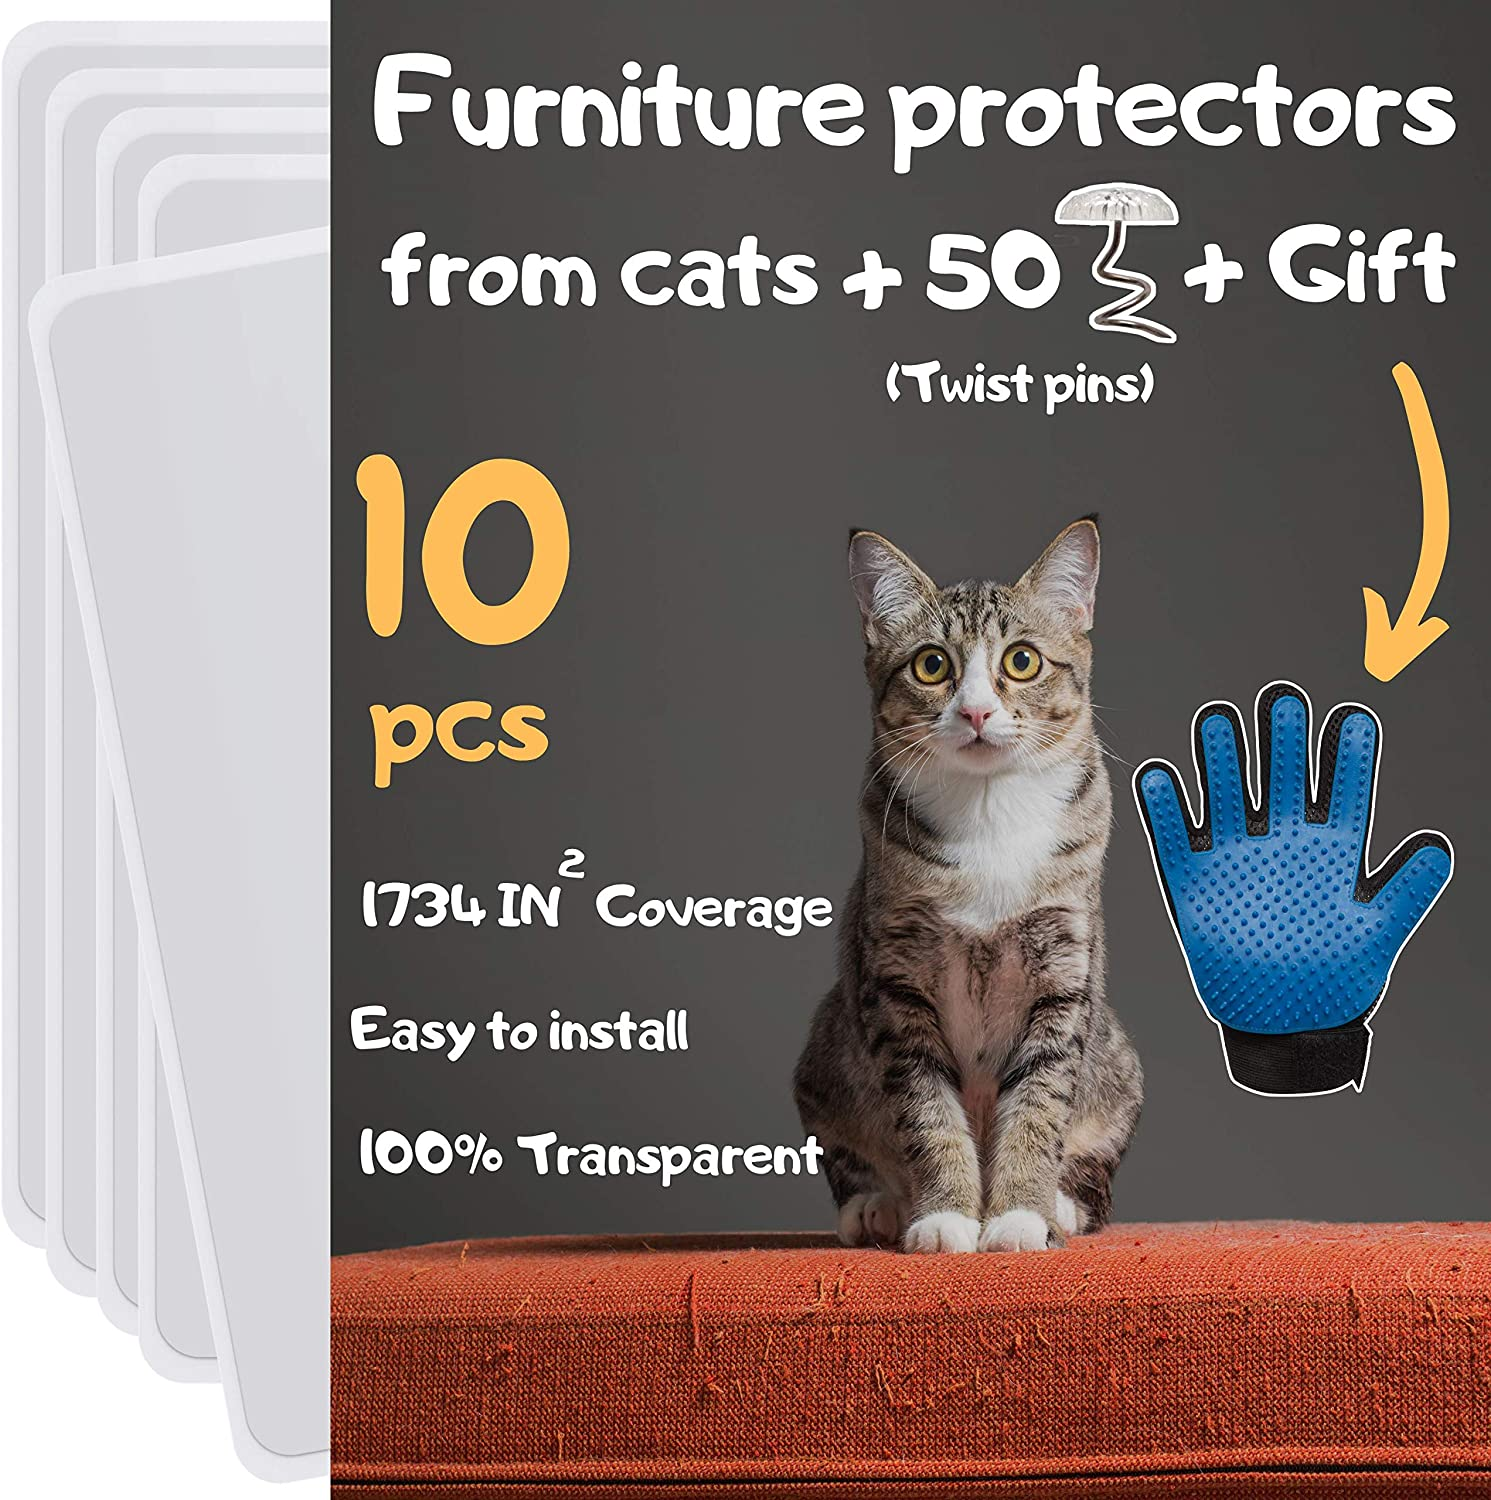 Cat Furniture Protector 10 Pack Cat Scratch Furniture Protector Furniture Protectors From Cats Cat Scratch Deterrent Couch Protectors From Cats Scratching Includes Cat Glove Pet Supplies